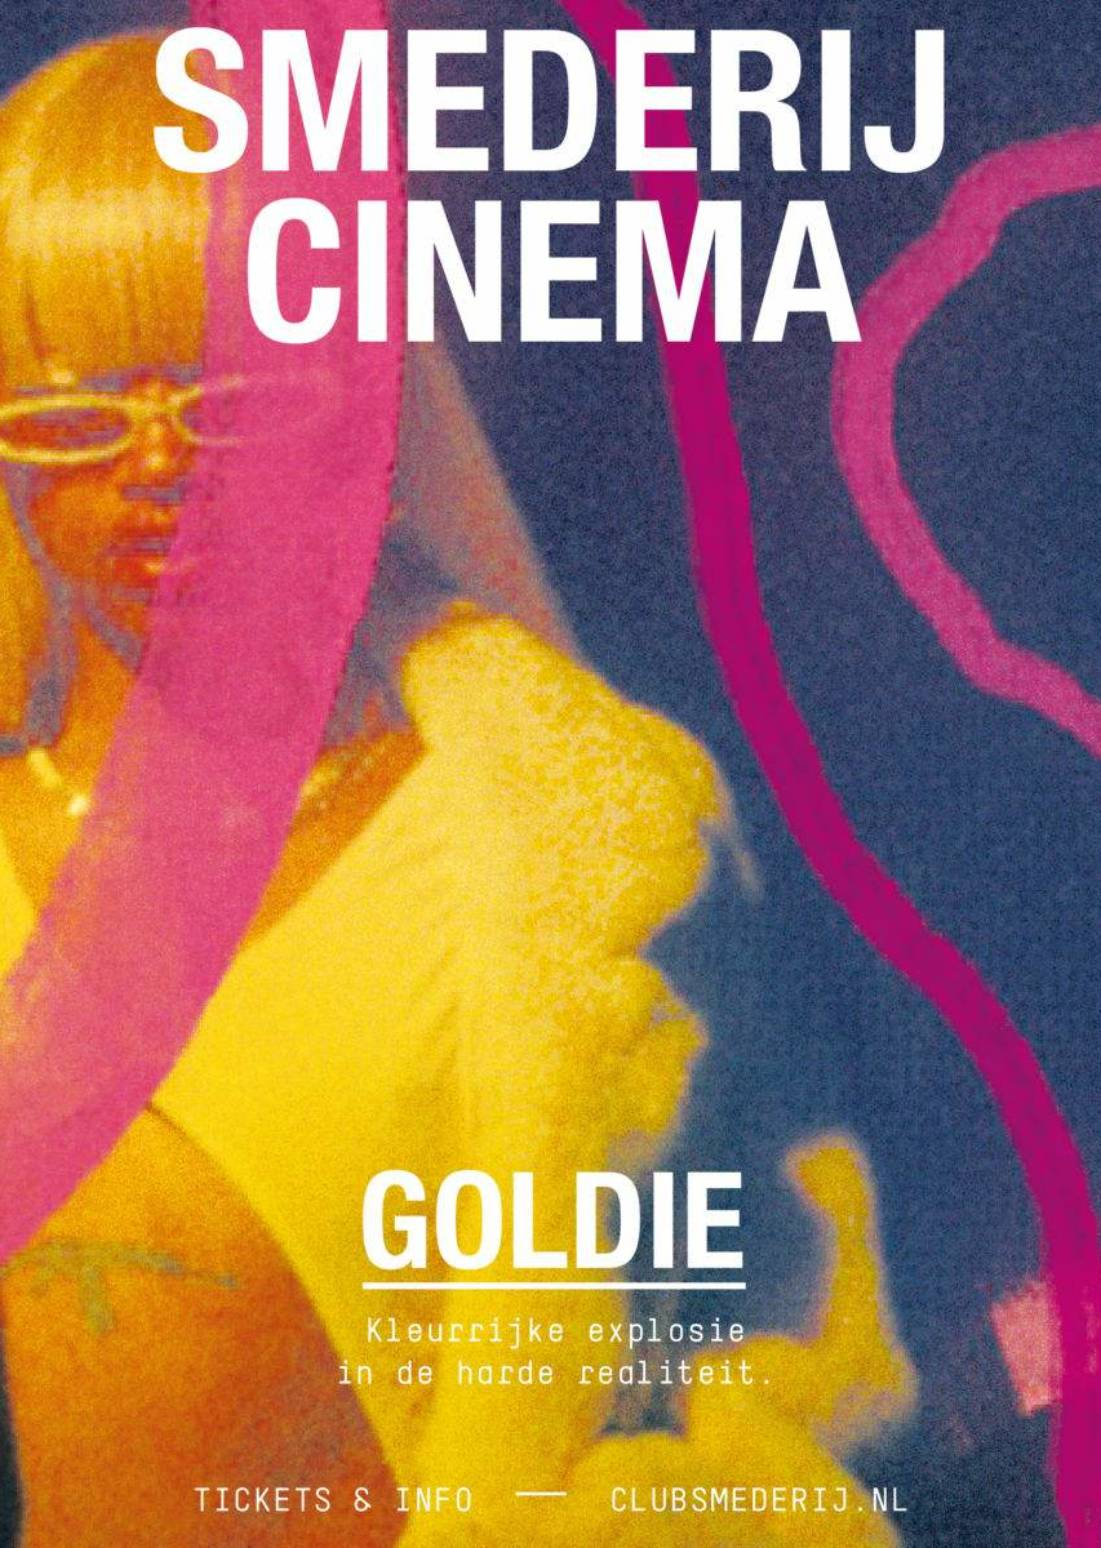 Smederij Cinema | GOLDIE